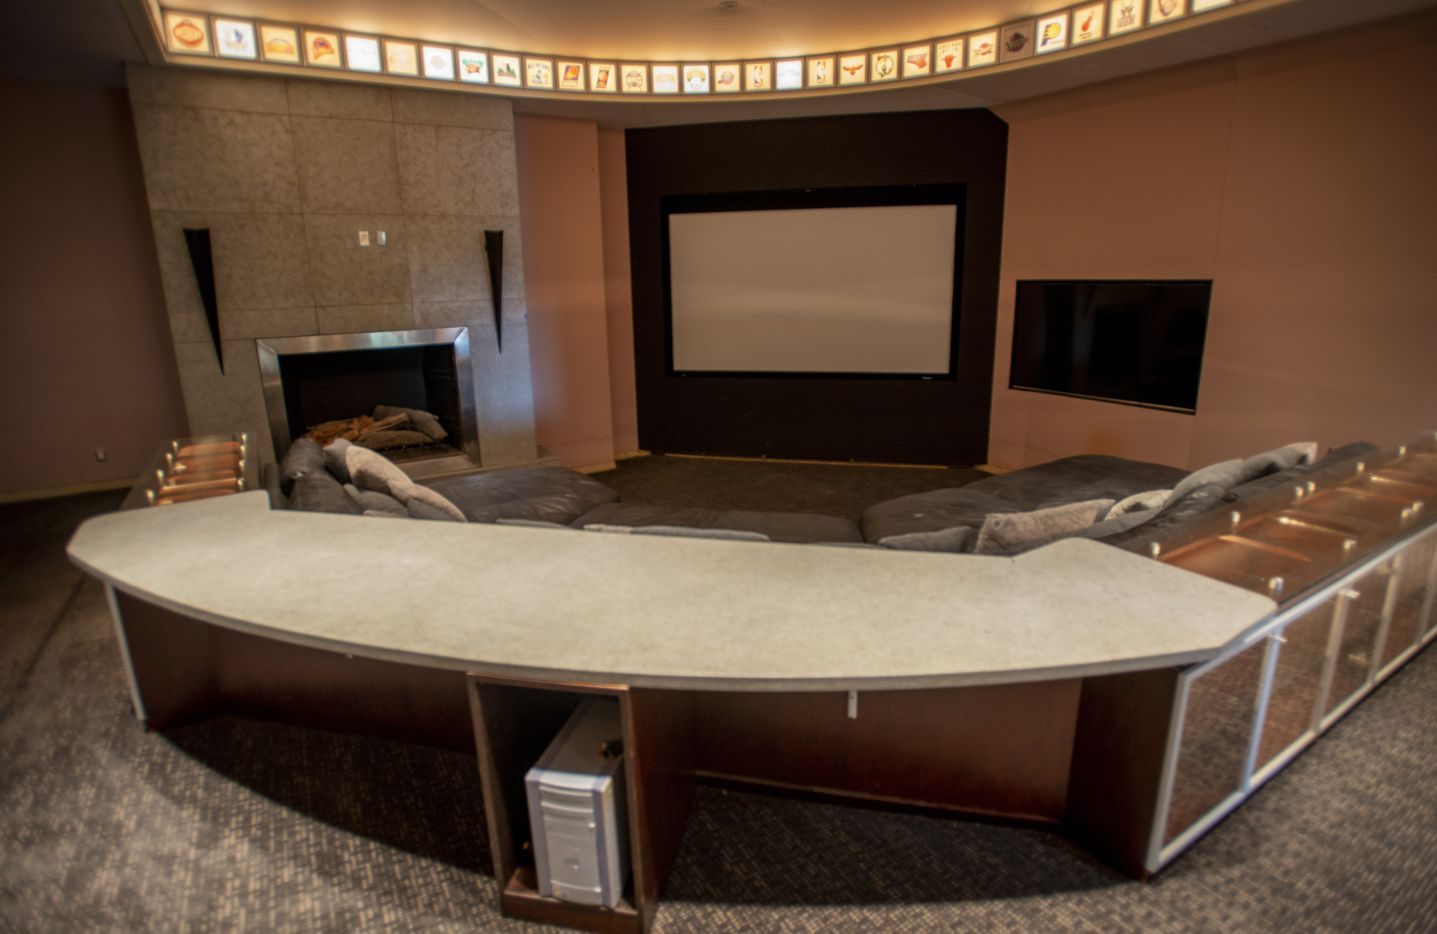 Movie theater at 5101 Kensington Ct., in Flower Mound, Texas on August 19, 2020. (Robert W. Hart/Special Contributor)